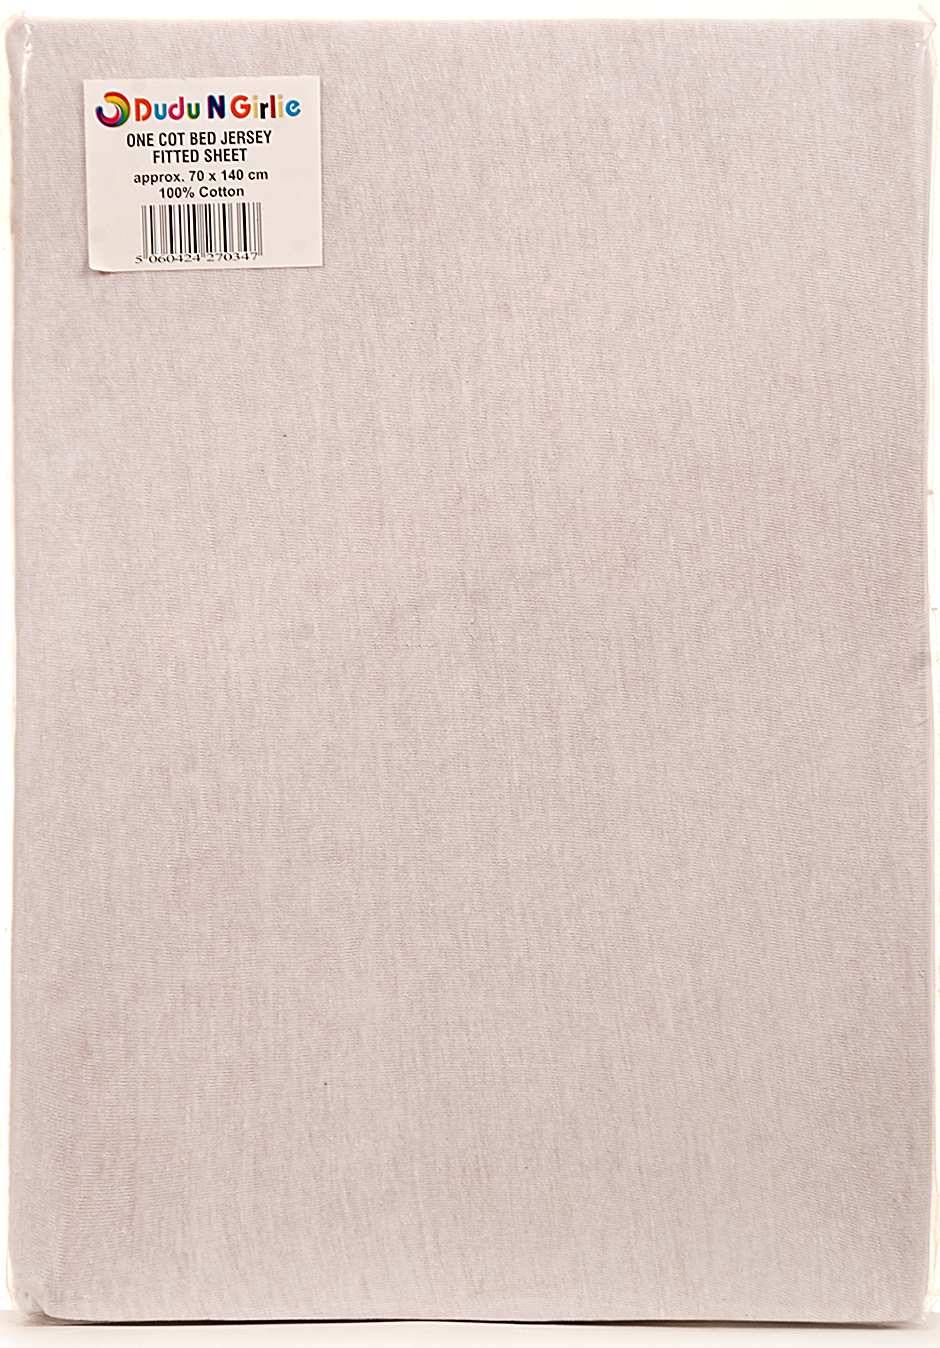 Fitted Sheets Cot Bed Sheets Bedding Amp Bed Linen